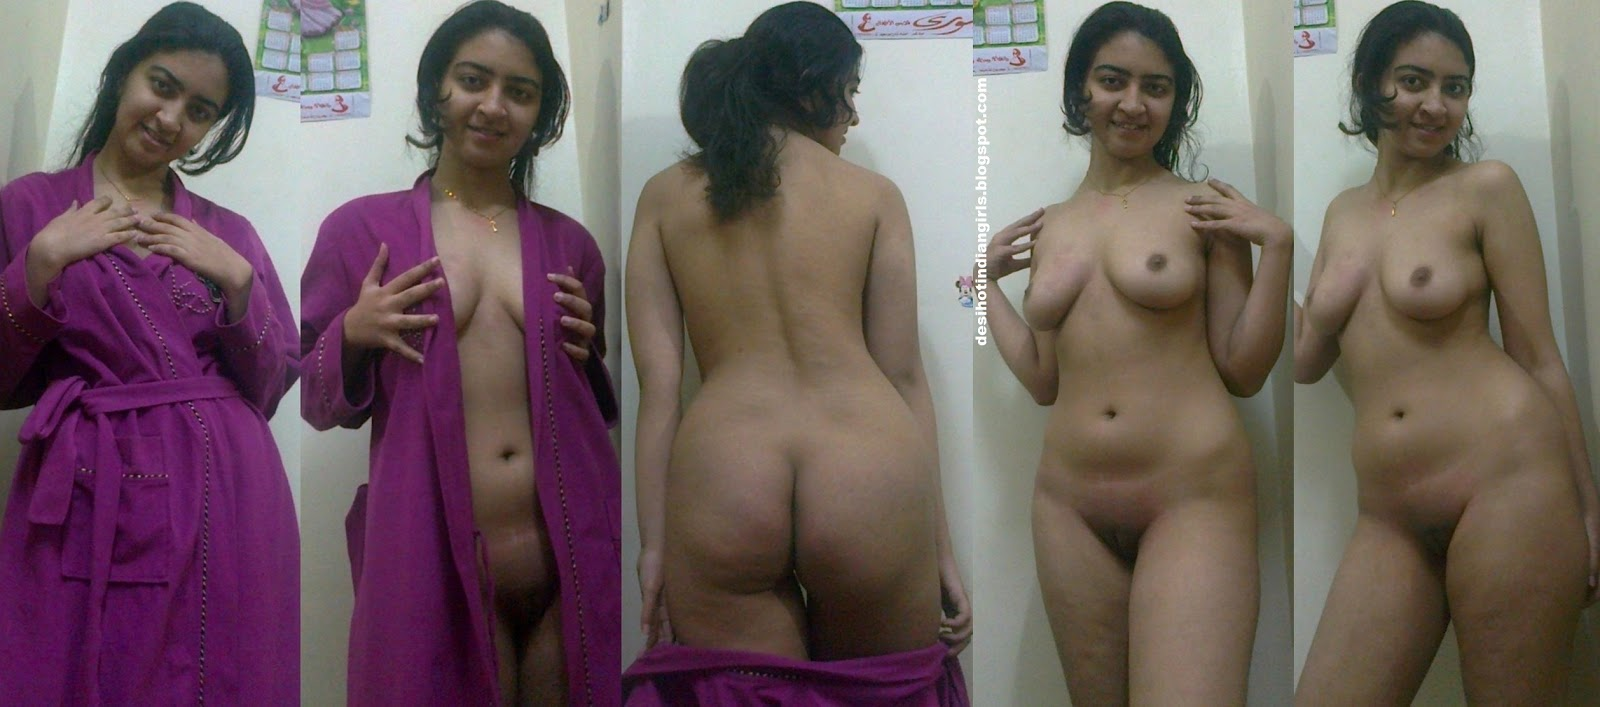 Indian Medical Exam Gay Sex Story And Naked Hairy Doctor The More